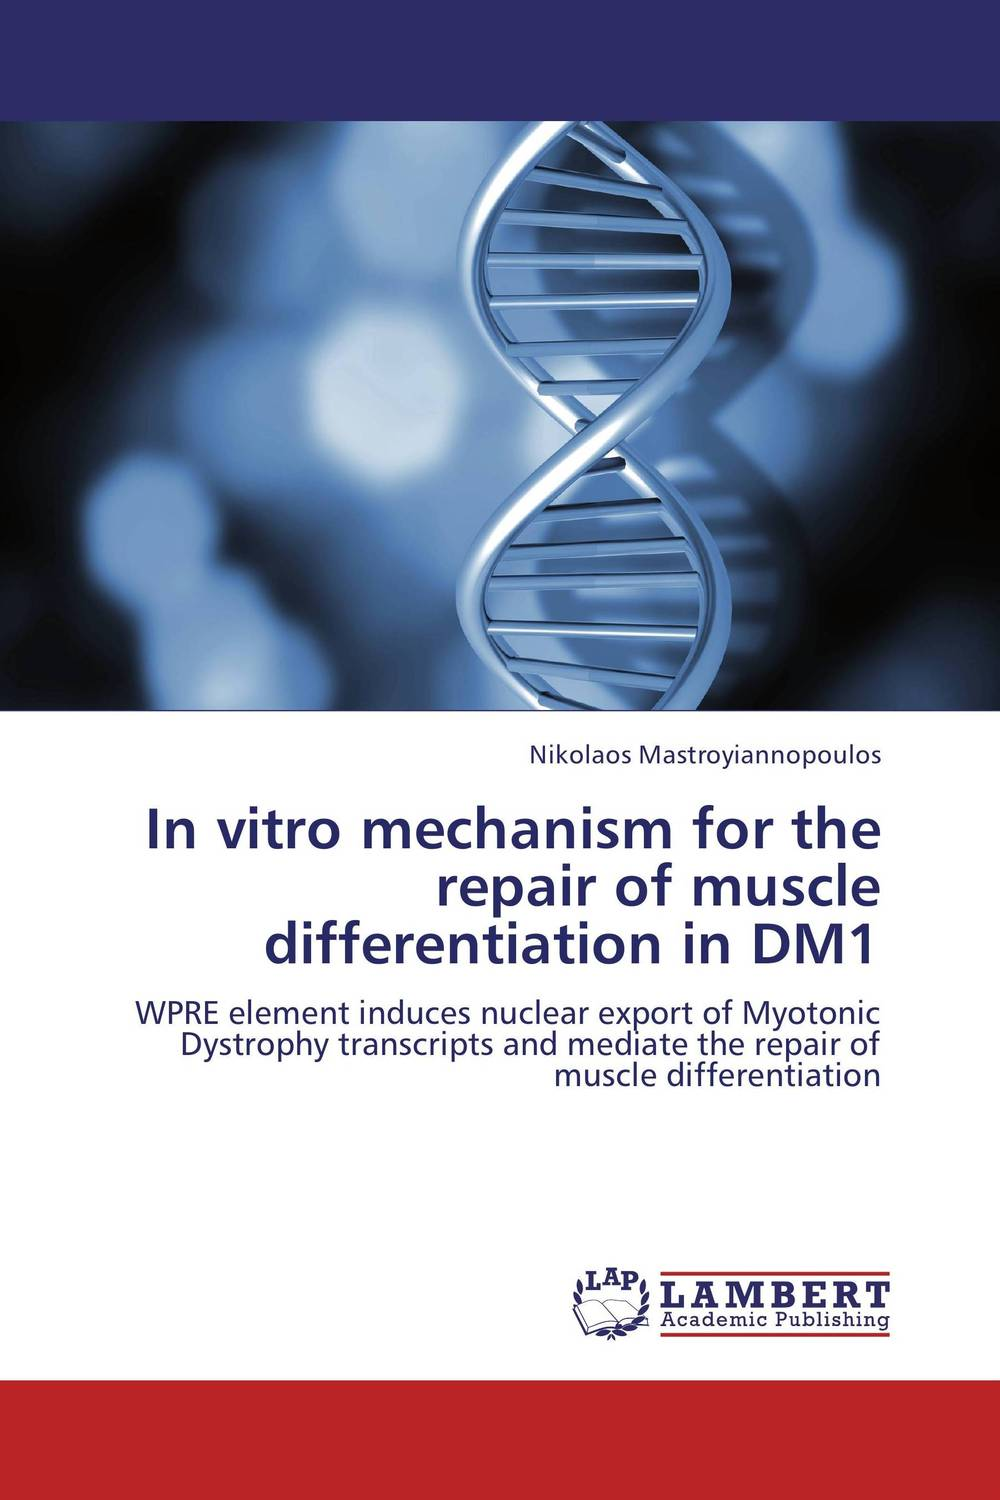 In vitro mechanism for the repair of muscle differentiation in DM1